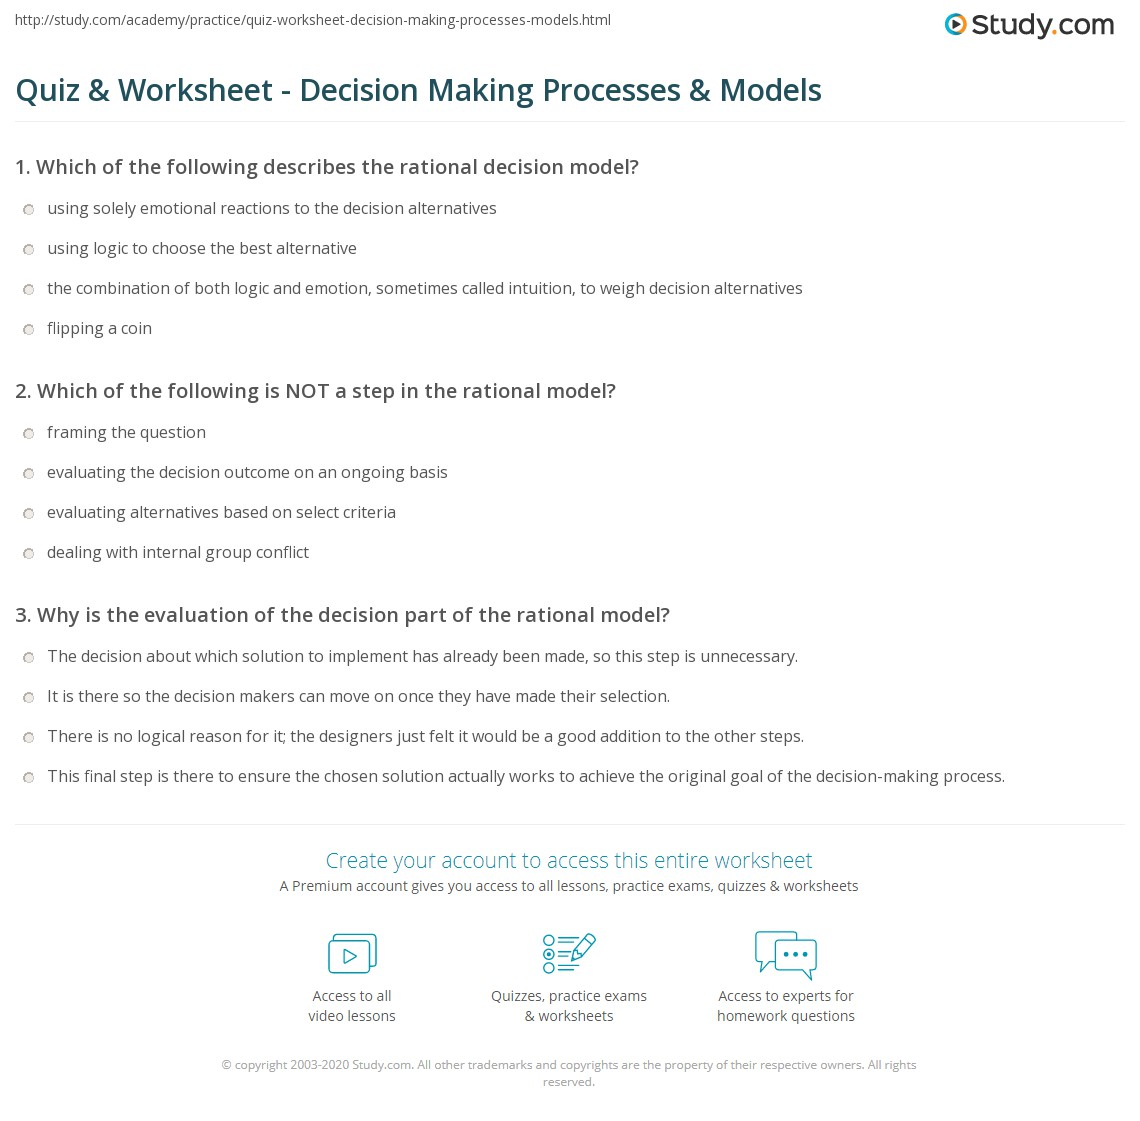 Quiz & Worksheet - Decision Making Processes & Models | Study.com